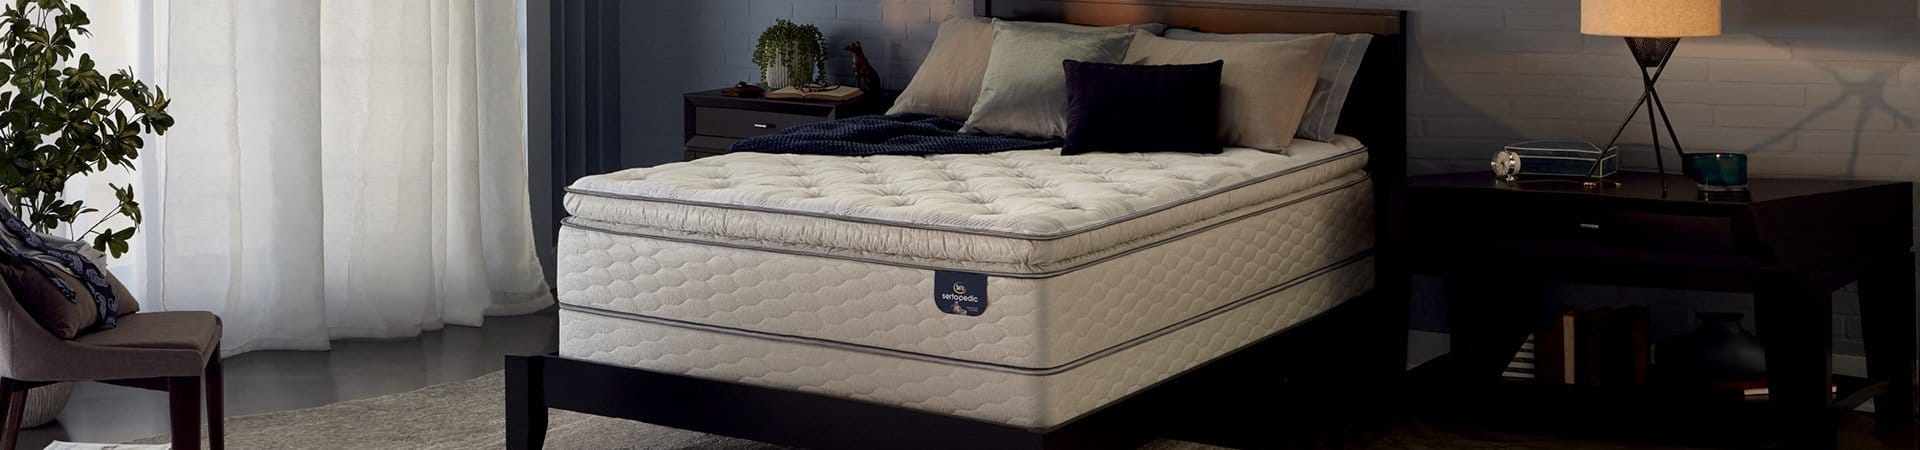 Best Serta Mattresses Reviewed in Detail